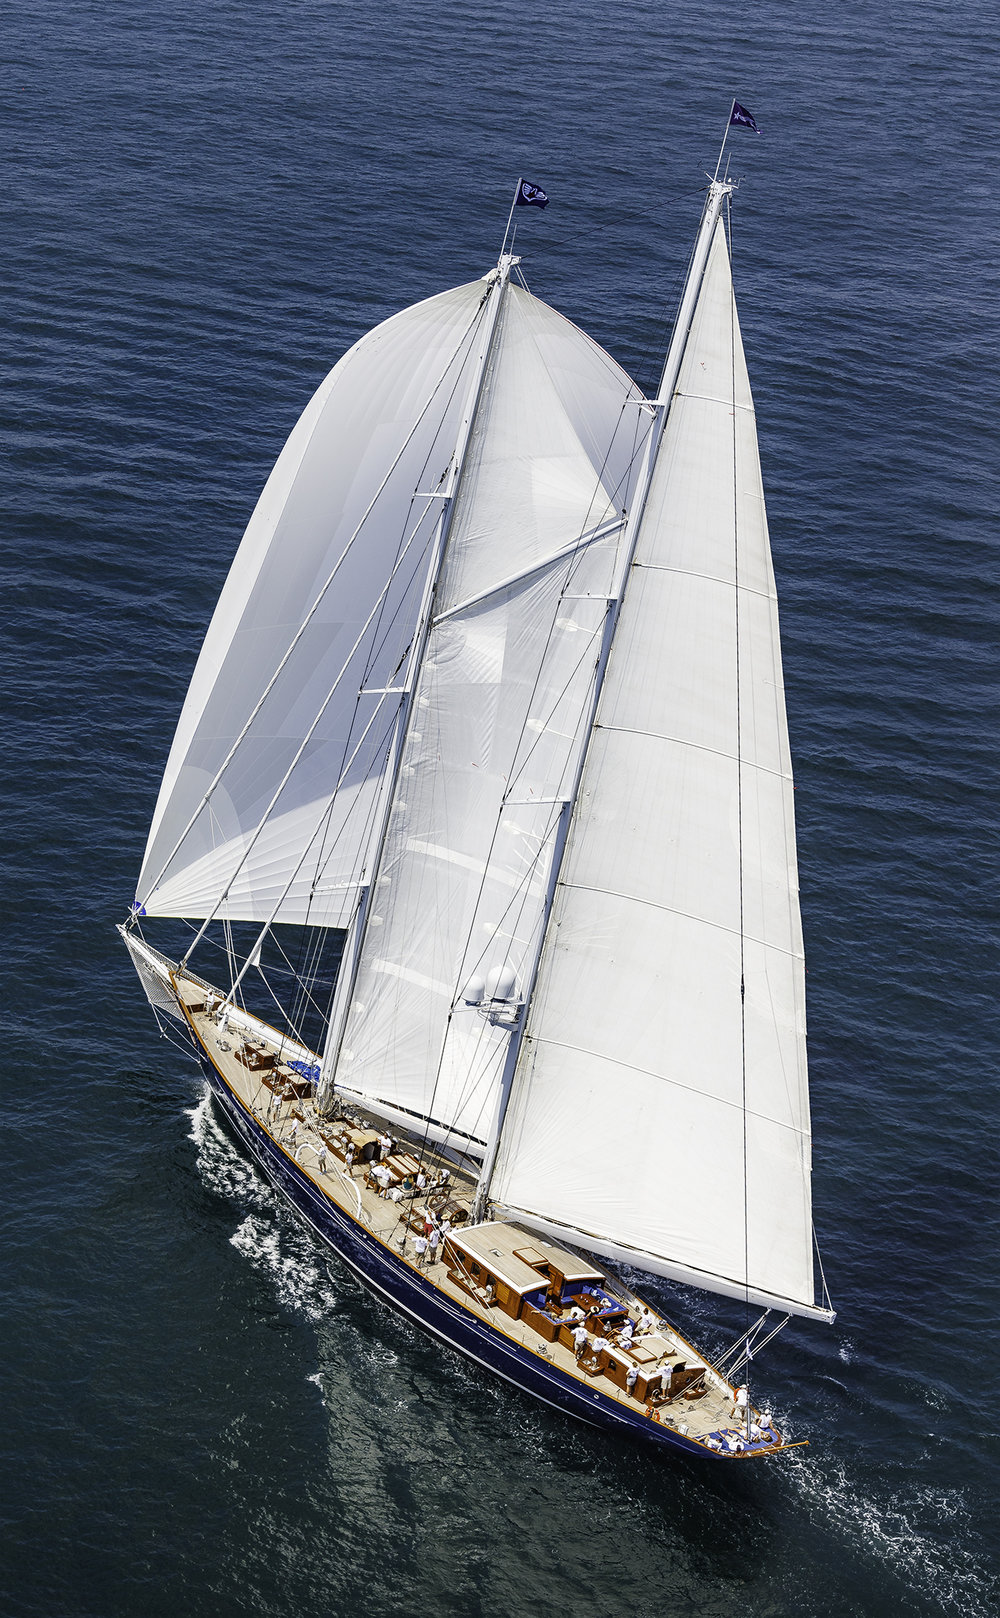 Meteor, the 170' (52 meter) schooner built by Royal Huisman and co-owned by Dan Meyers, competes in the 2016 Candy Store Cup. Photo: © Rod Harris